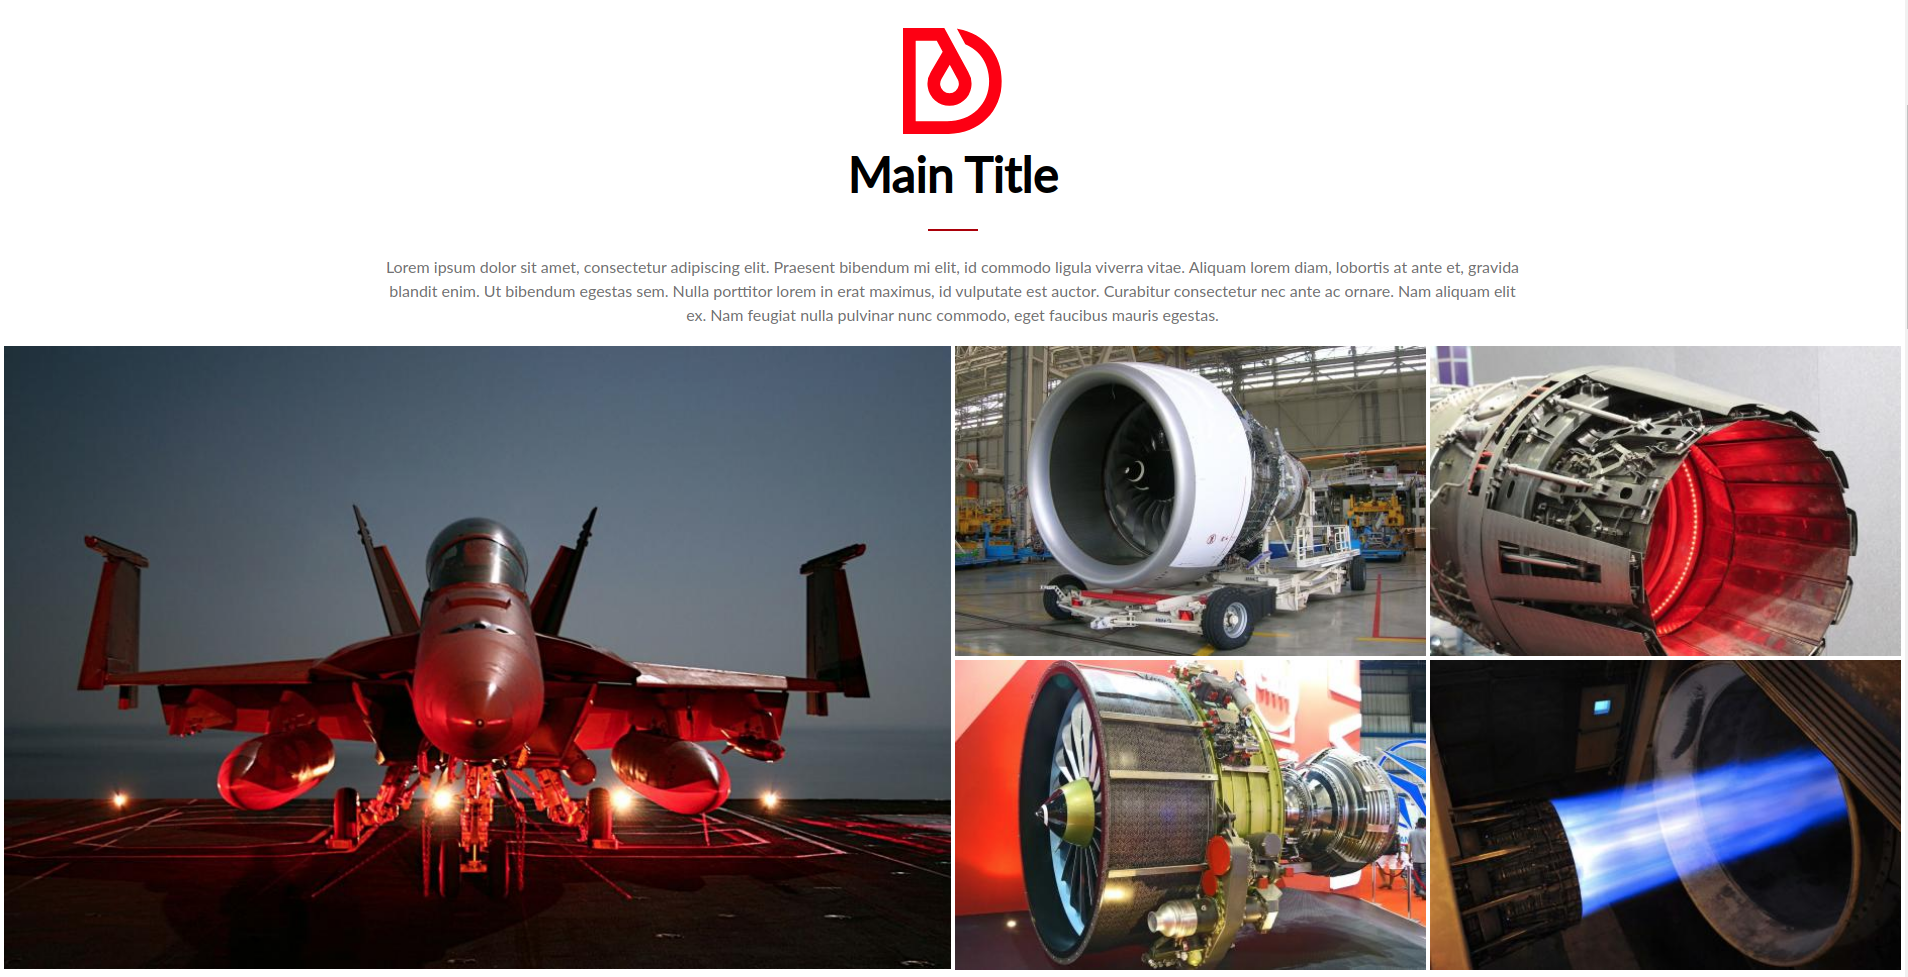 An example of using a photo as a tile on a website based on Droopler, thanks to the Drupal Media module